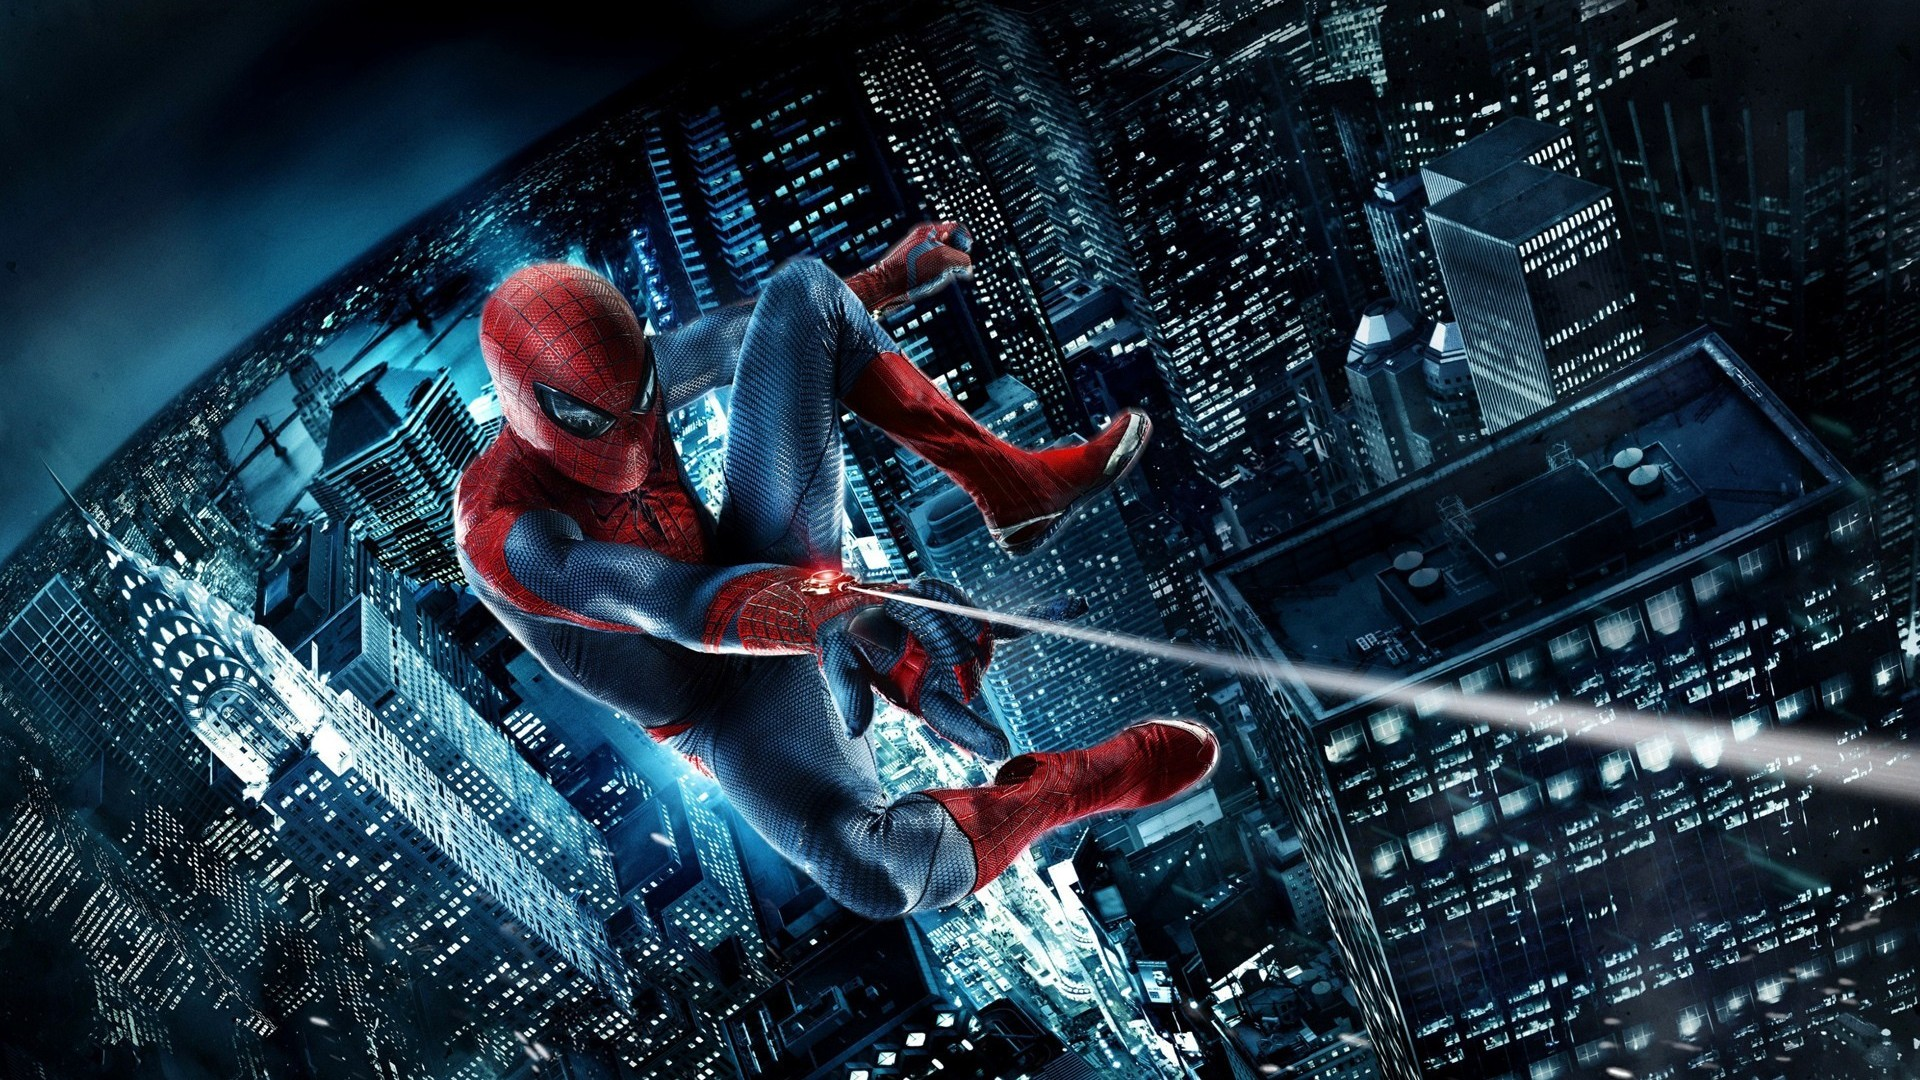 wallpaper.wiki-Spiderman-Art-Wallpaper-PIC-WPD002679